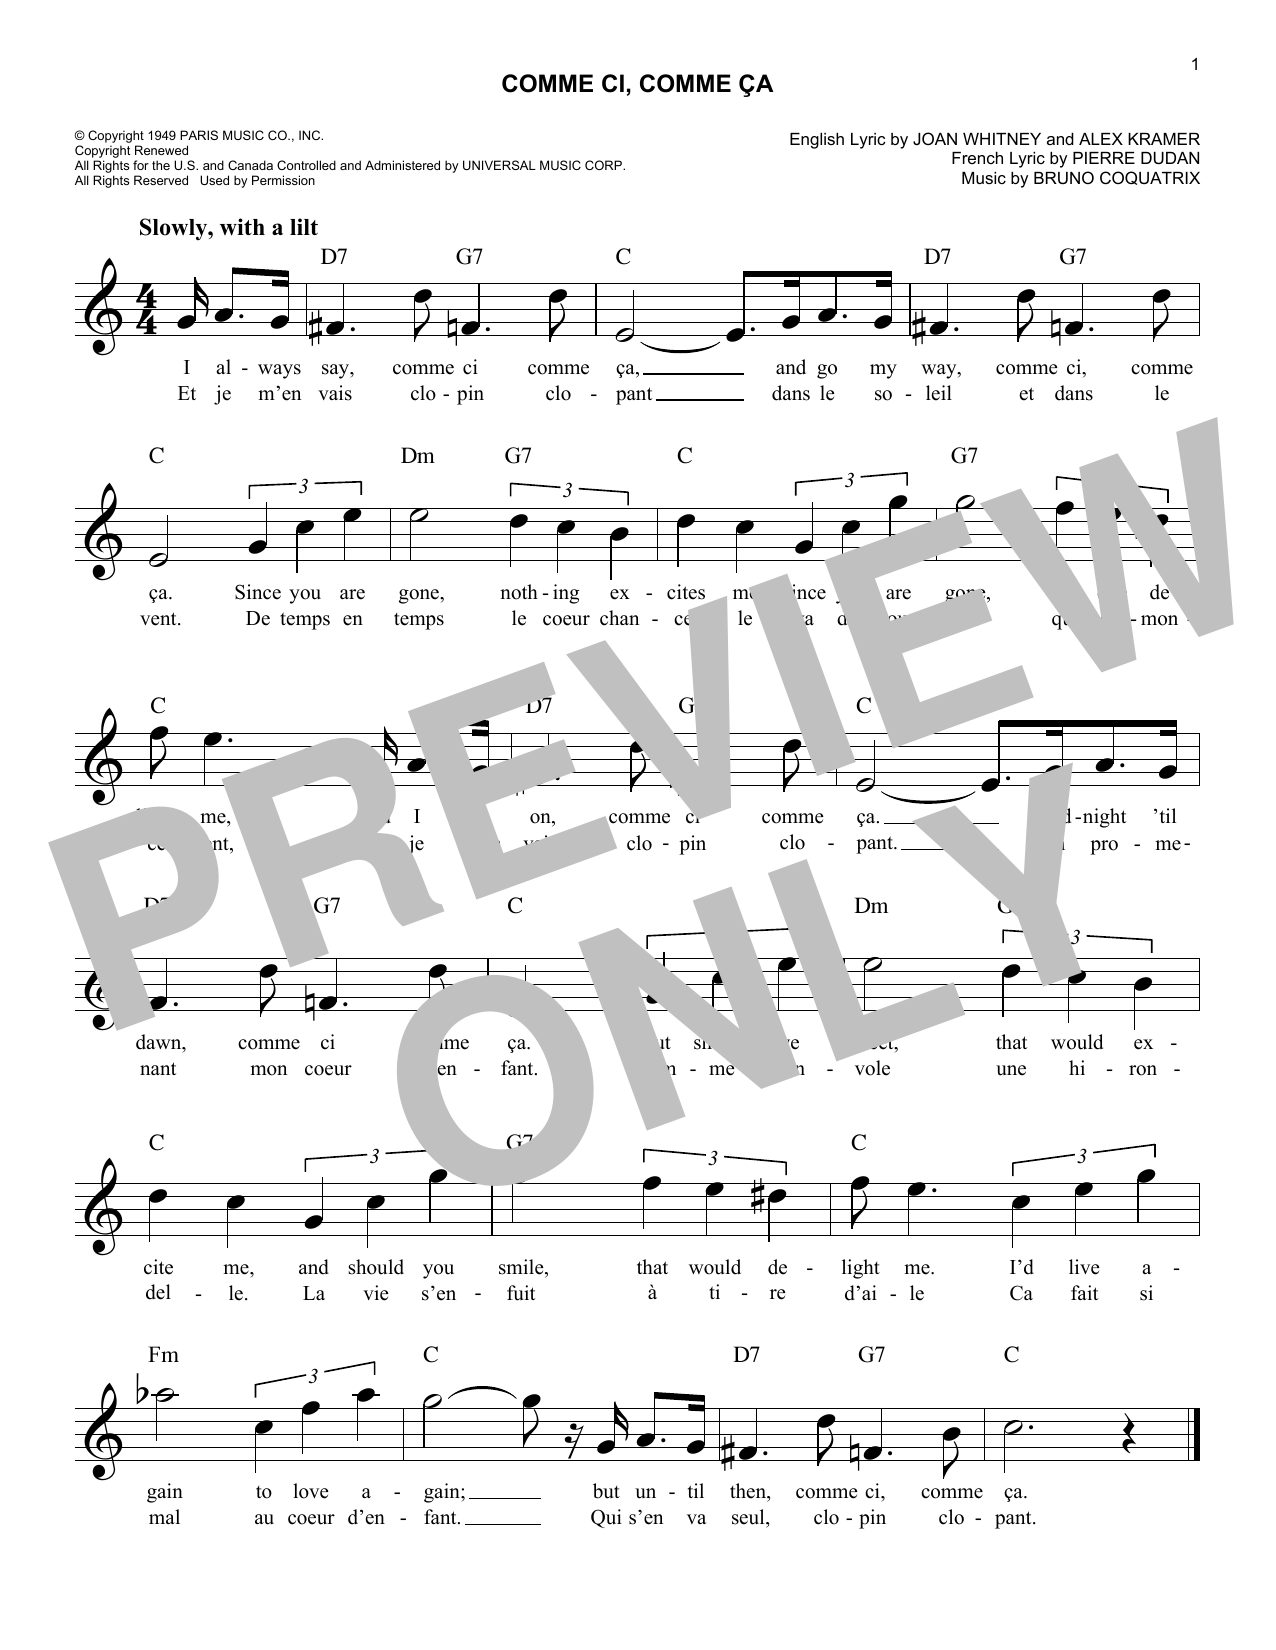 Pierre Dudan (orig. French) Comme Ci, Comme Ca sheet music notes and chords. Download Printable PDF.